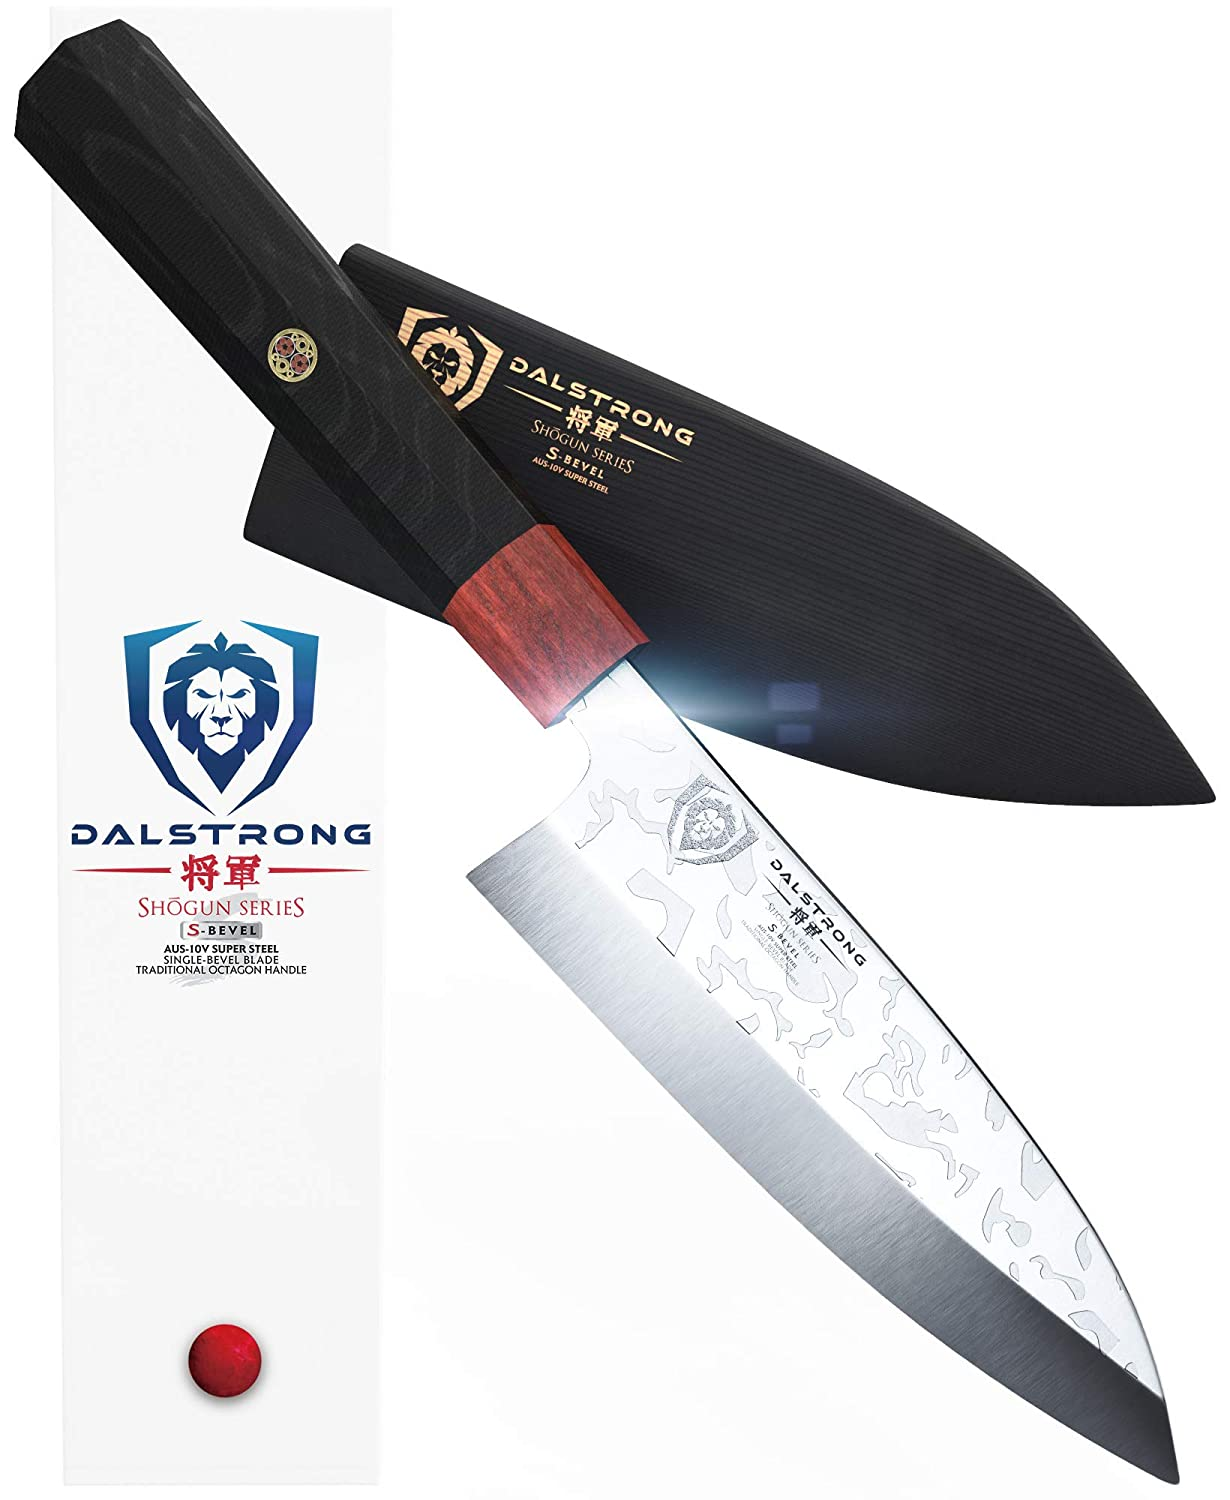 DALSTRONG Deba Knife- Shogun Series 'S' - Single Bevel - 6